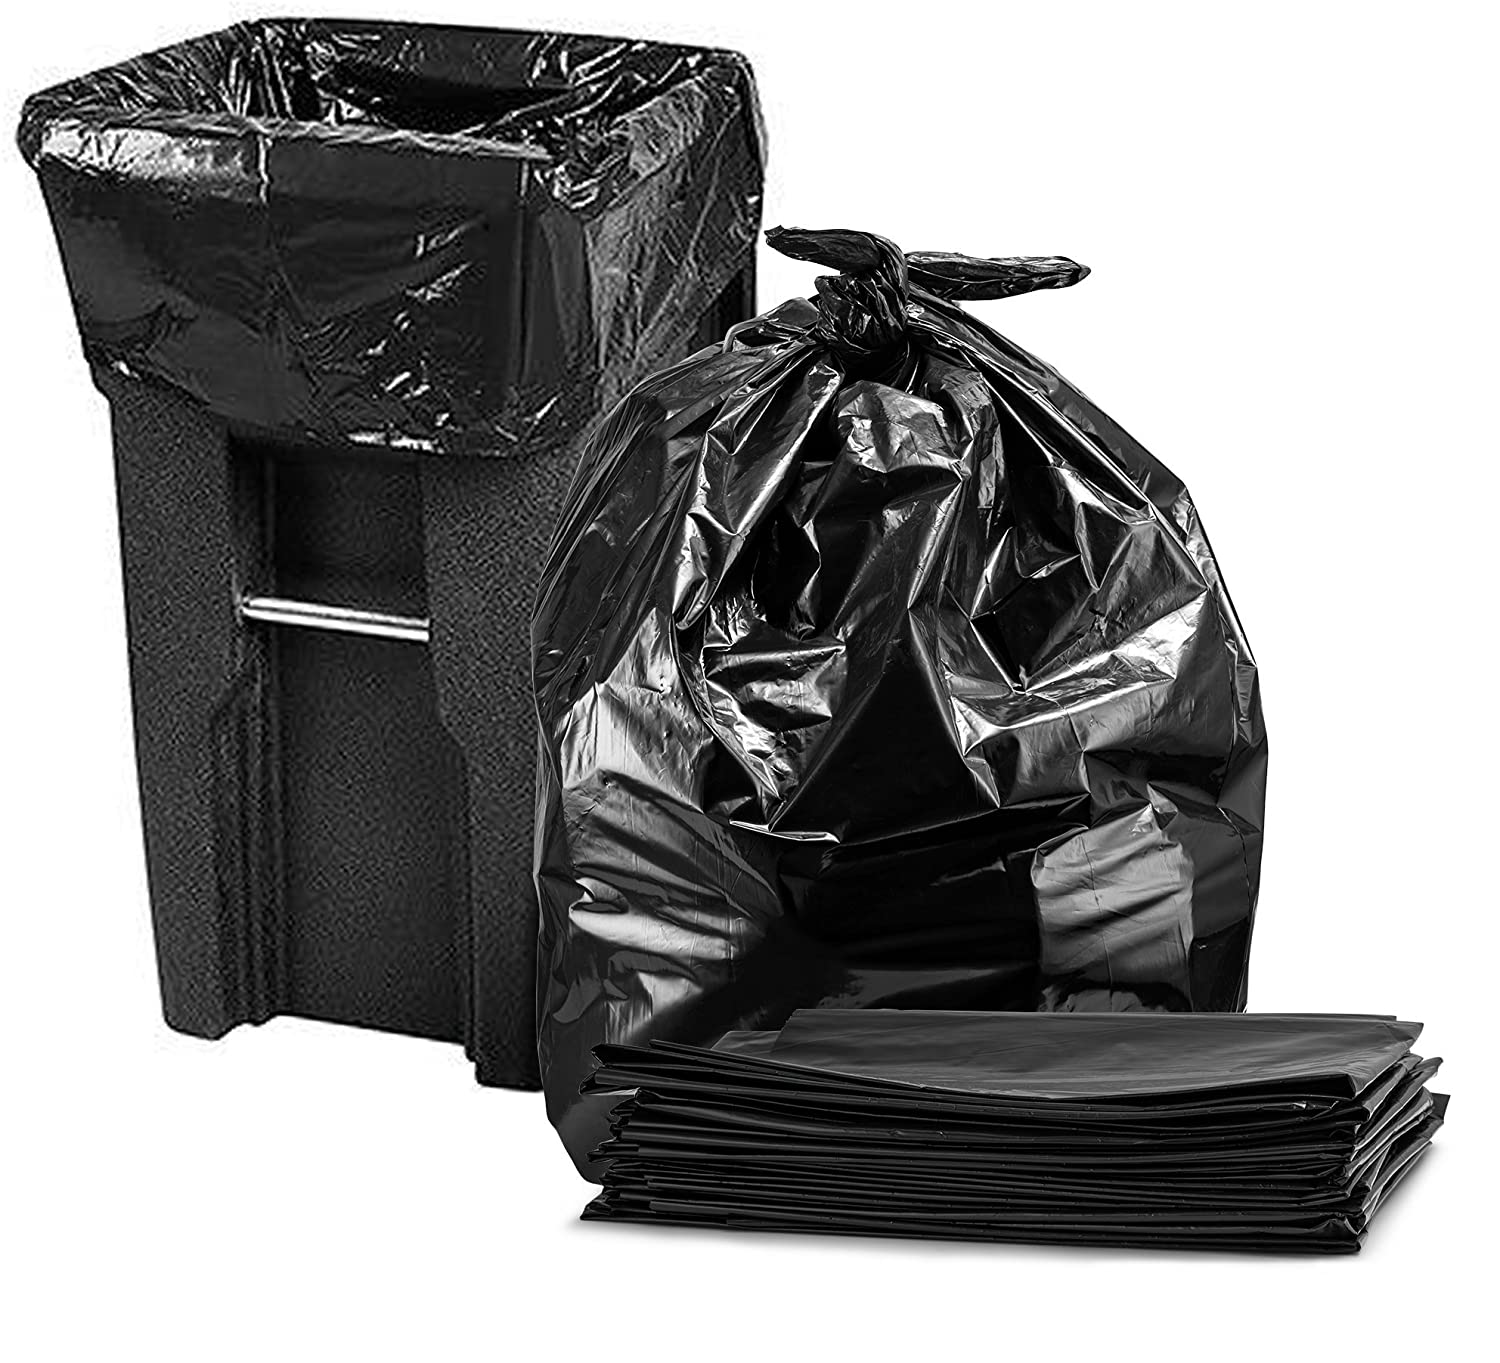 Trash Bags 65 Gallon, Heavy Duty Garbage Bags, 50 Wx48 H, Black (50 Count) 50 Wx48 H